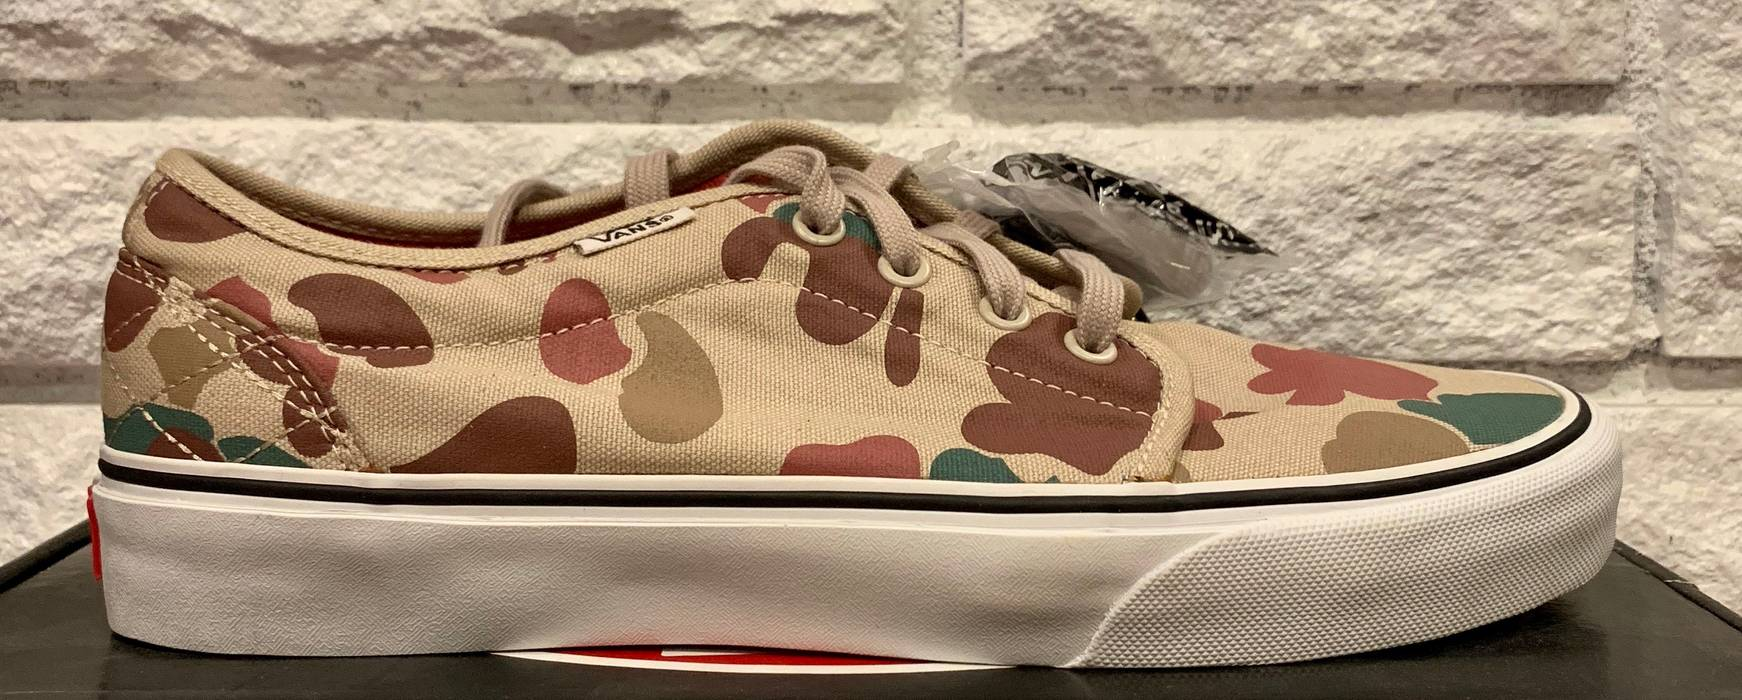 4fa871107f Supreme NIB Duck Camo 106 From FW09 Size 9 - Low-Top Sneakers for ...